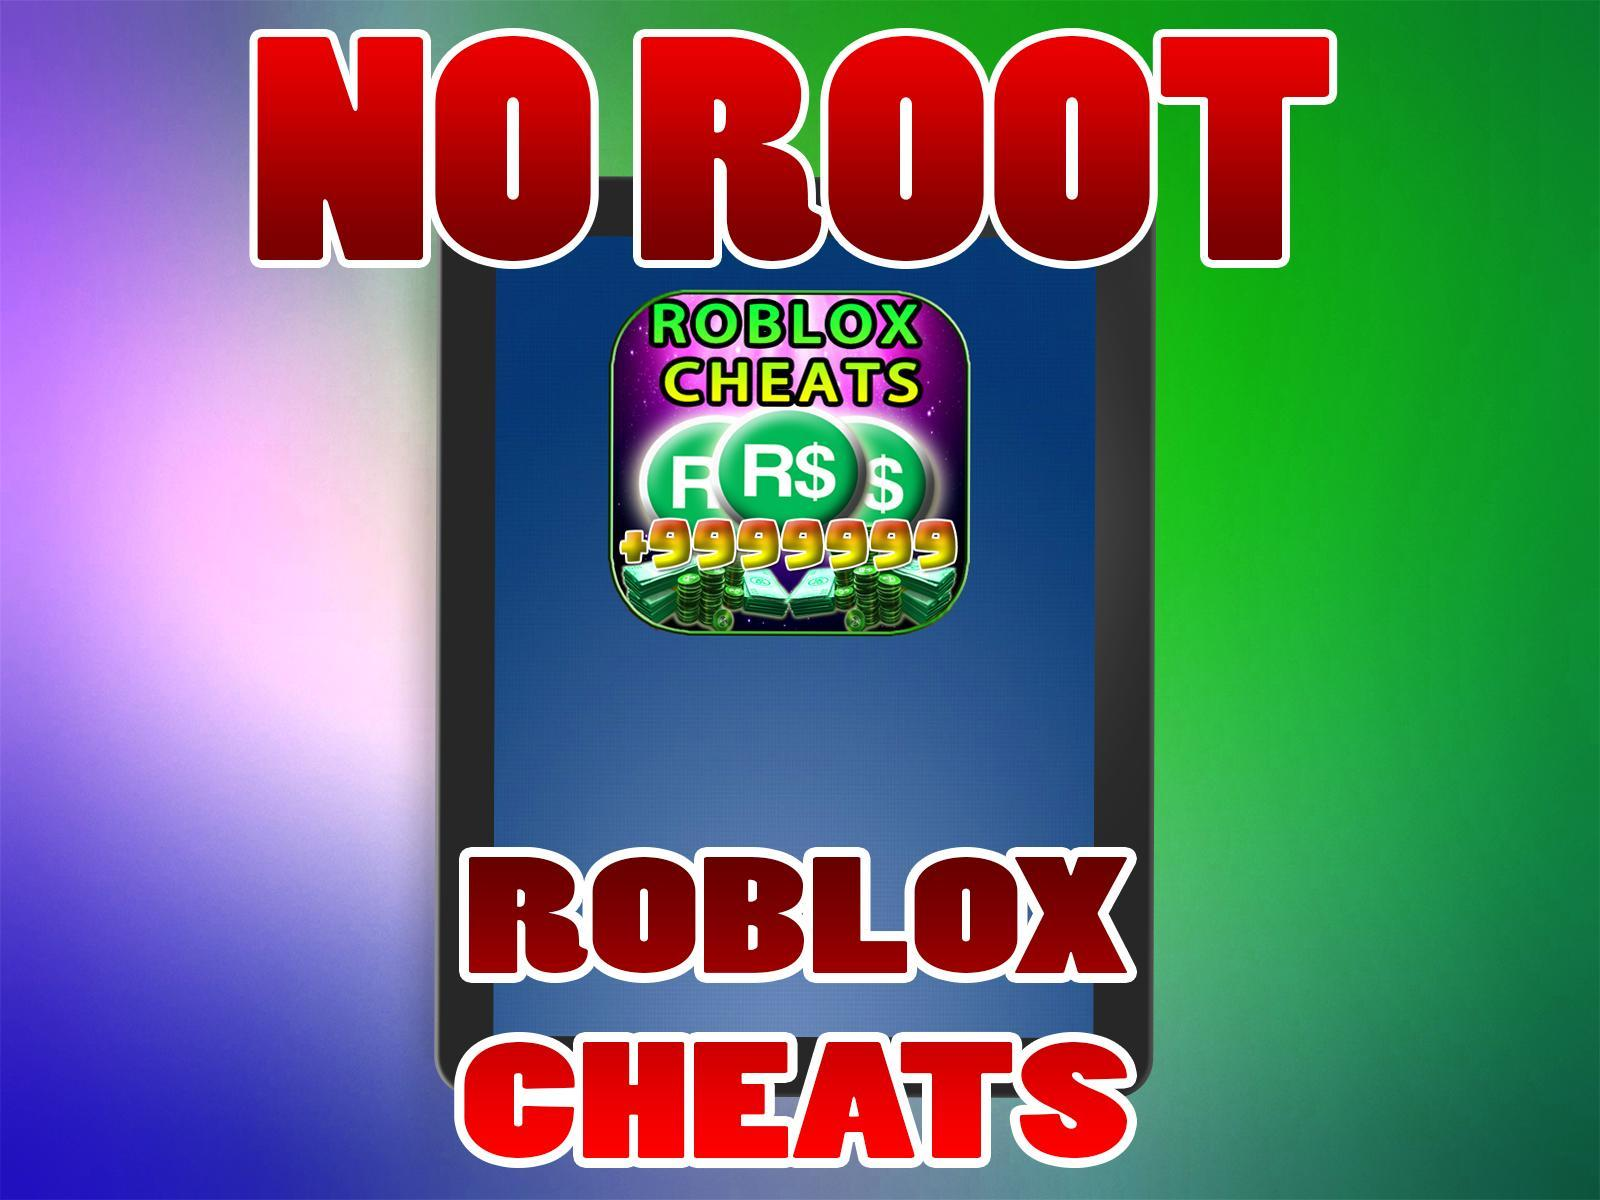 No Root Robux For Roblox Prank For Android Apk Download - robloxcom launcher roblox generator works